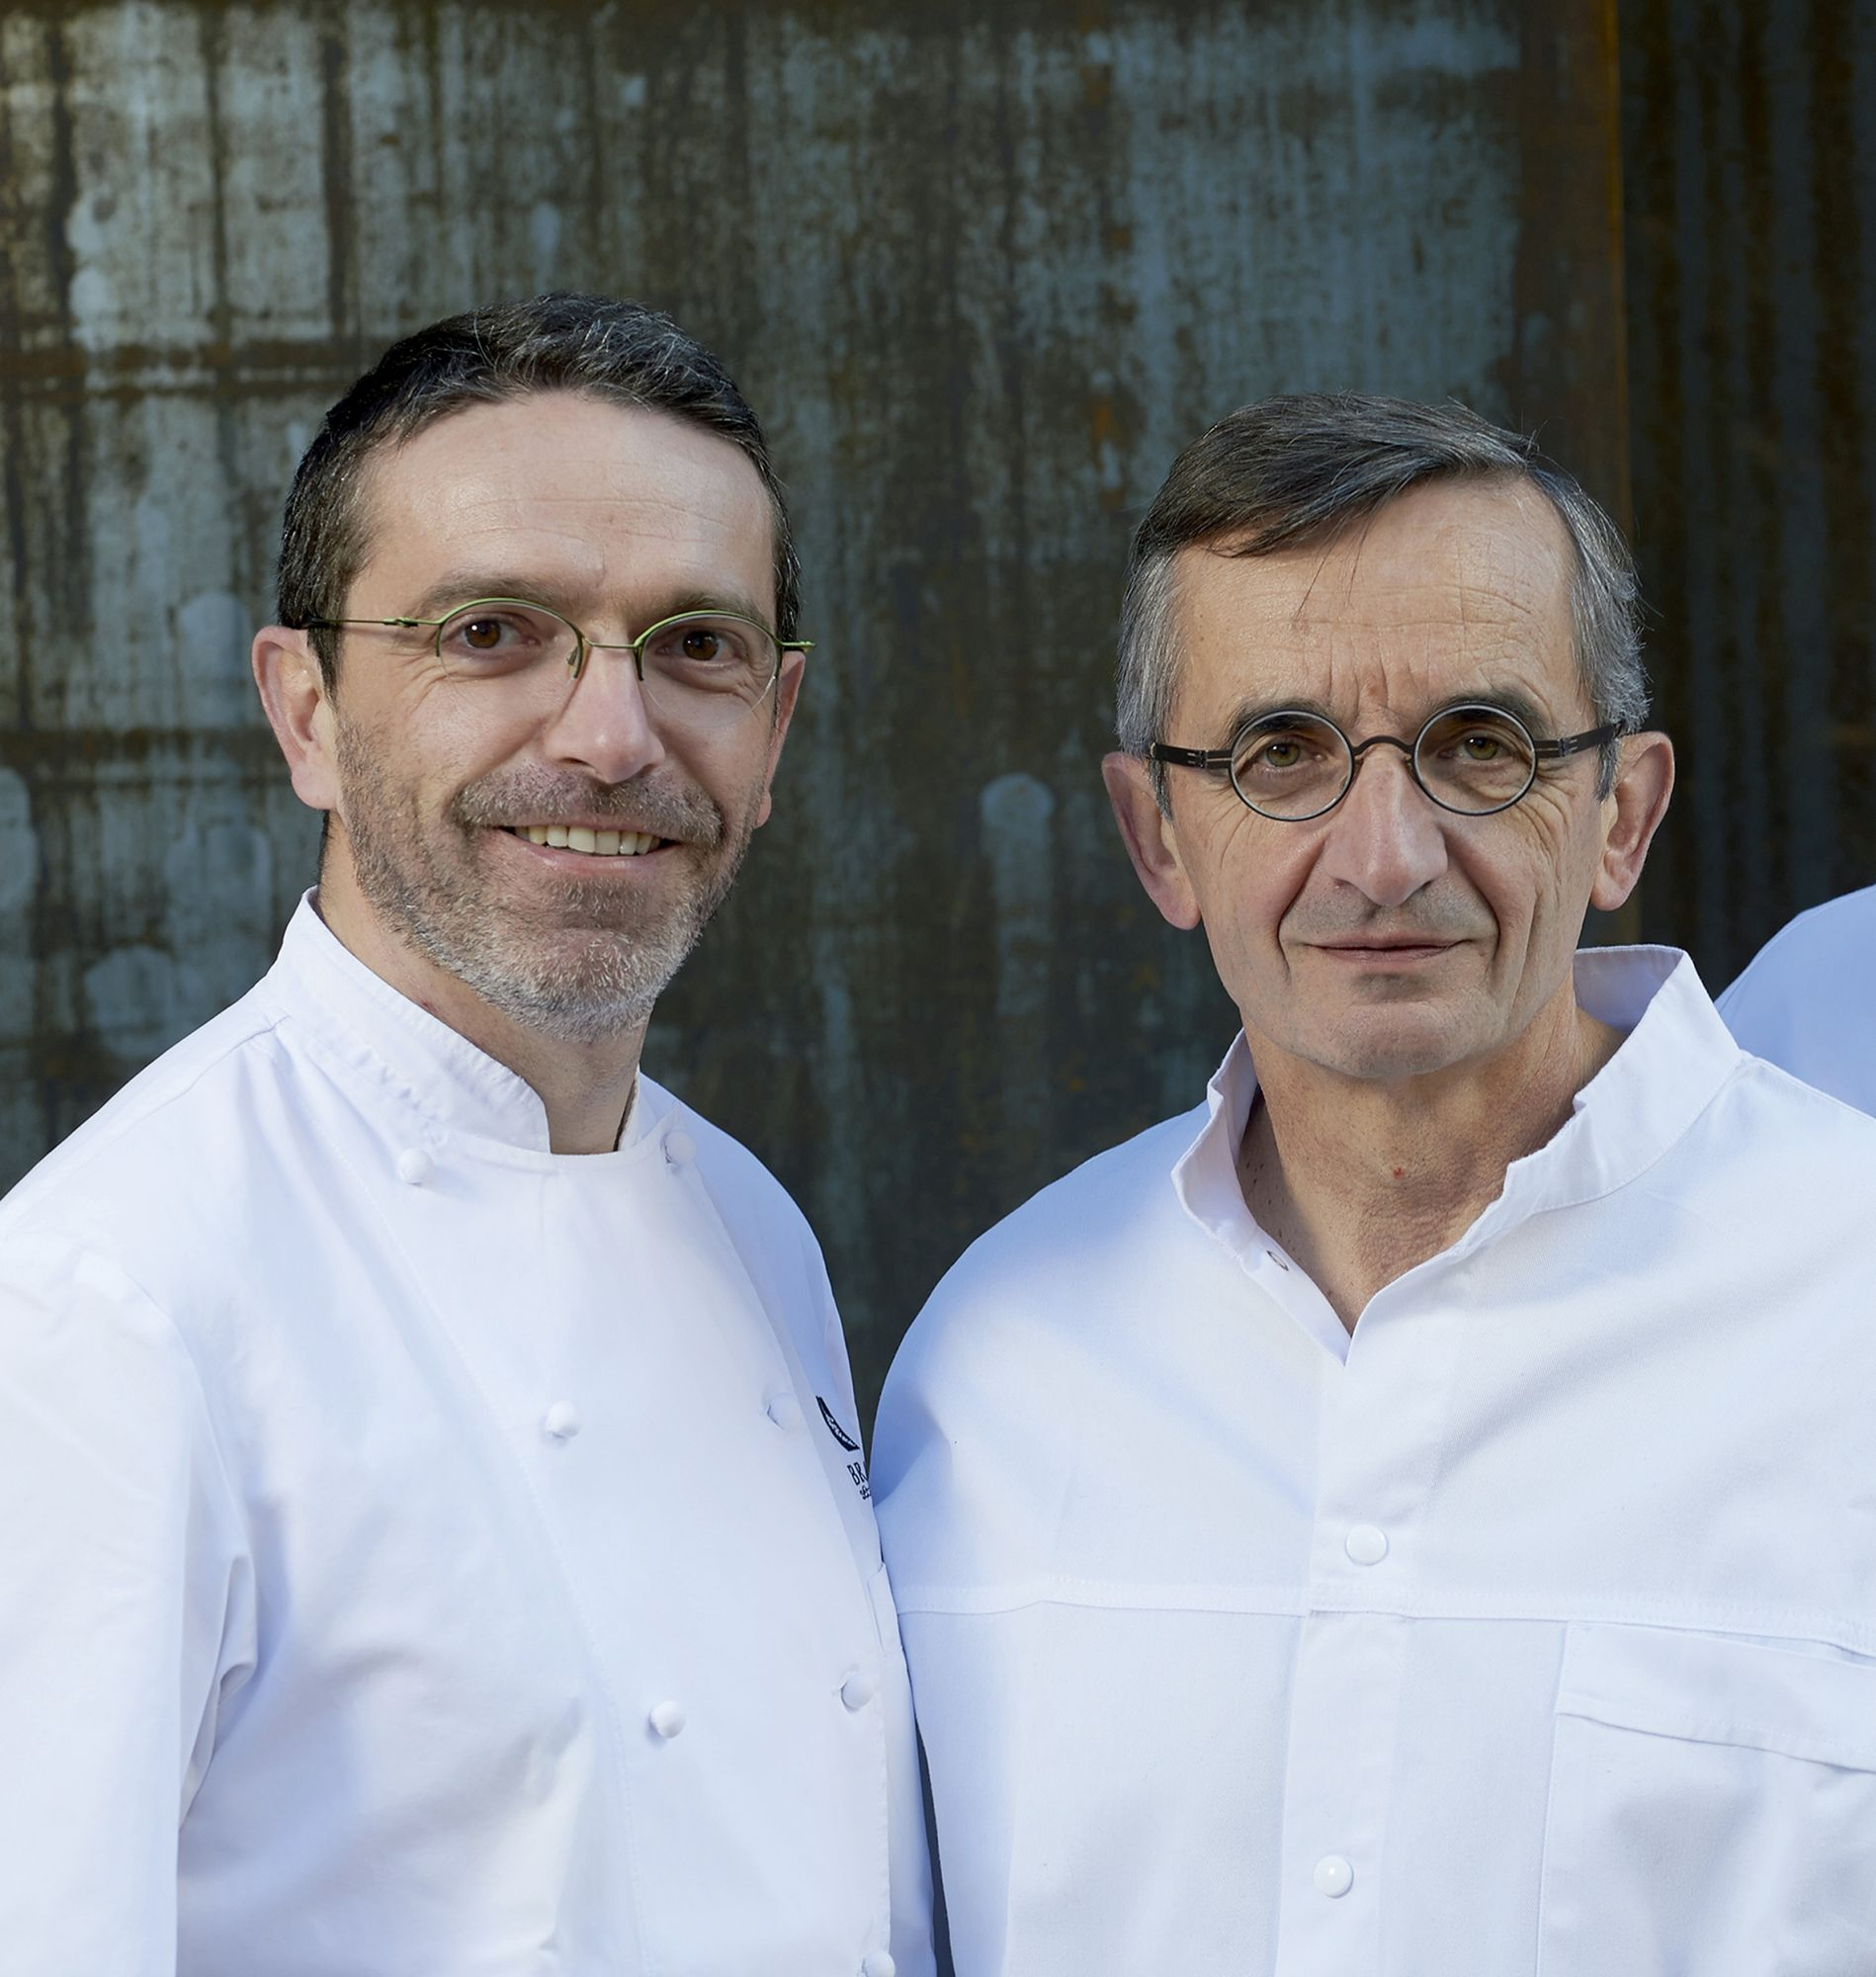 Culinary Masterminds Michel And Sébastien Bras On How They Tell Stories With The Food They Cook